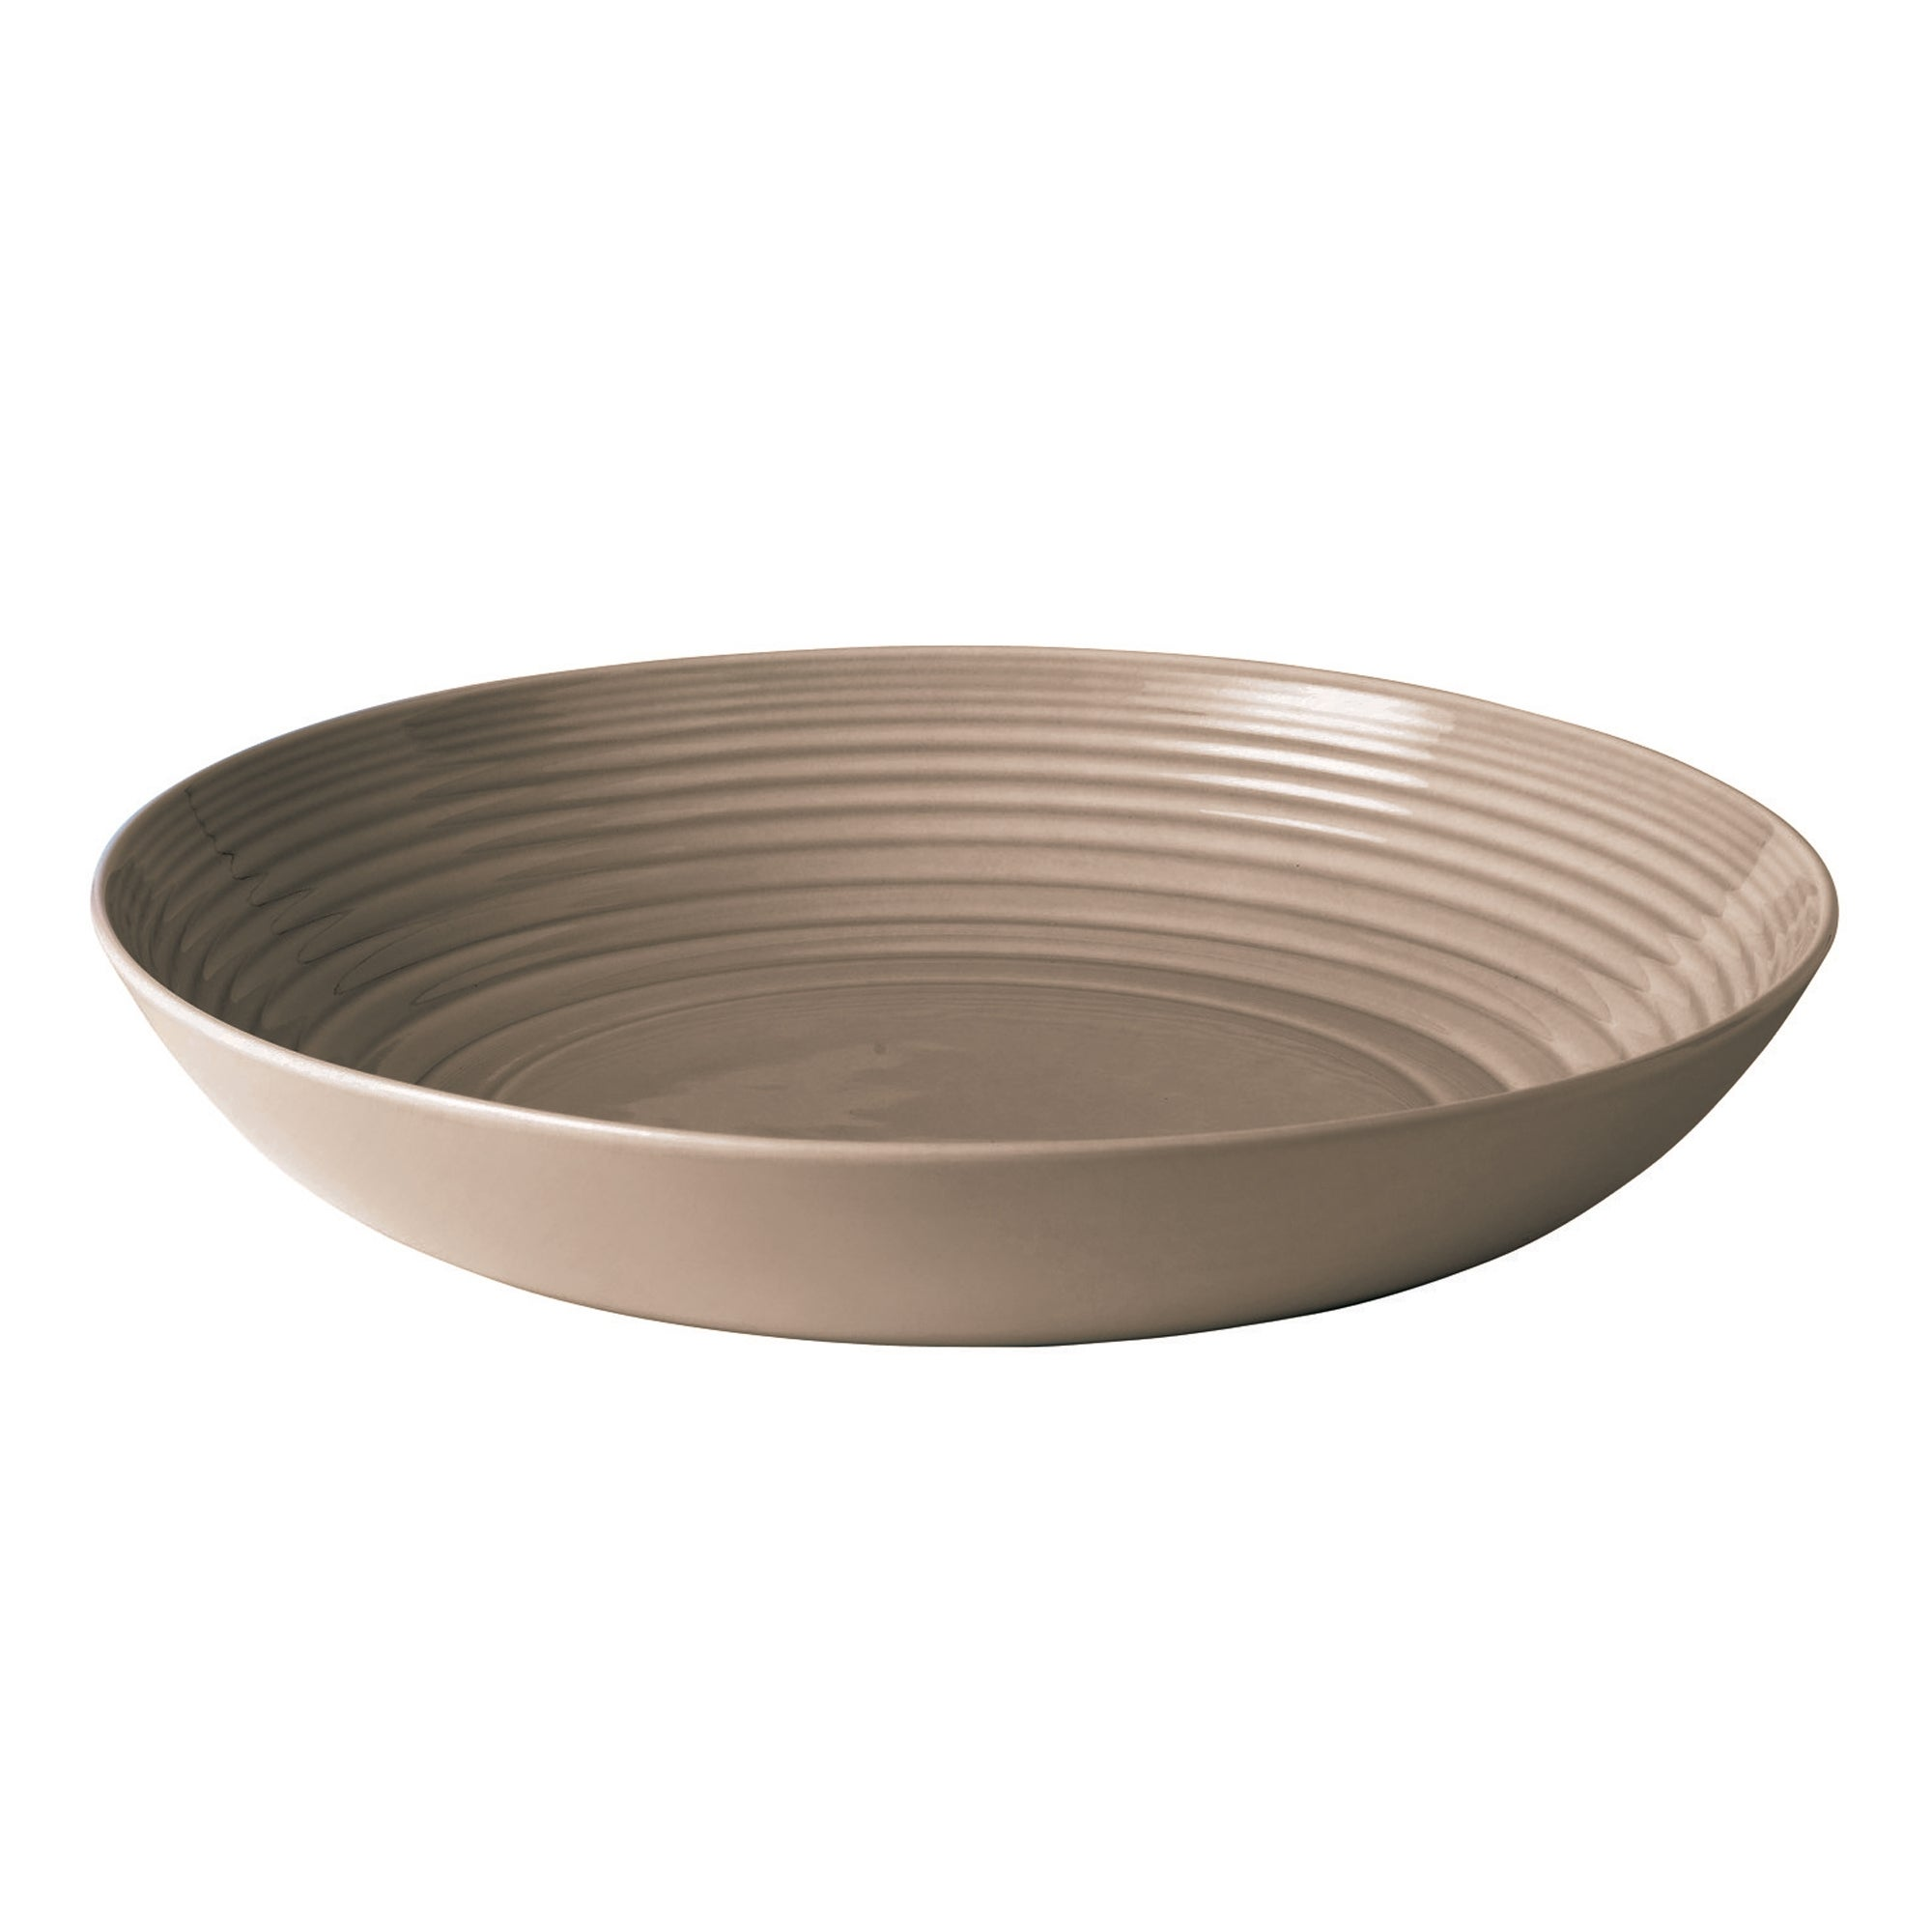 Taupe Gordon Ramsay Maze Collection Serving Bowl